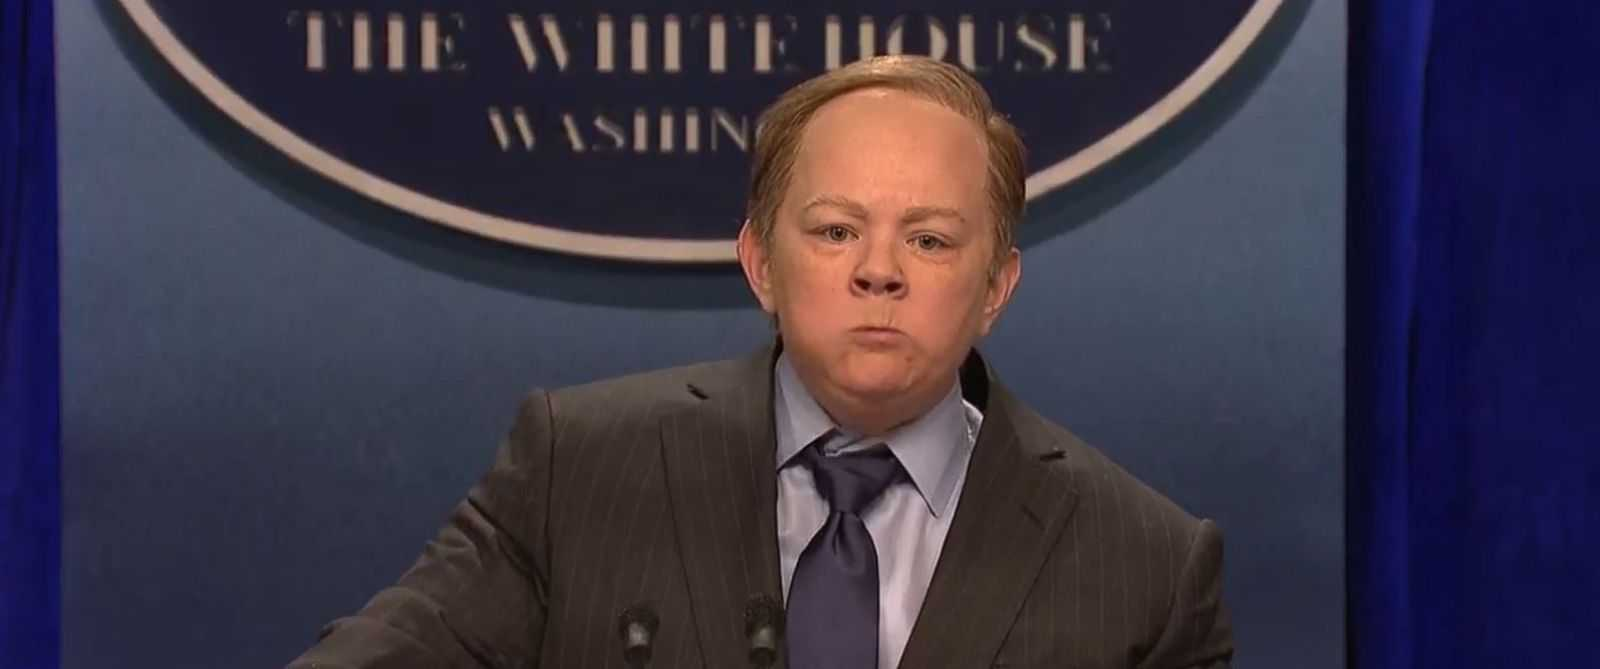 Sean Spicer Reacts To Melissa McCarthy's SNL Impression | Sean Spicer